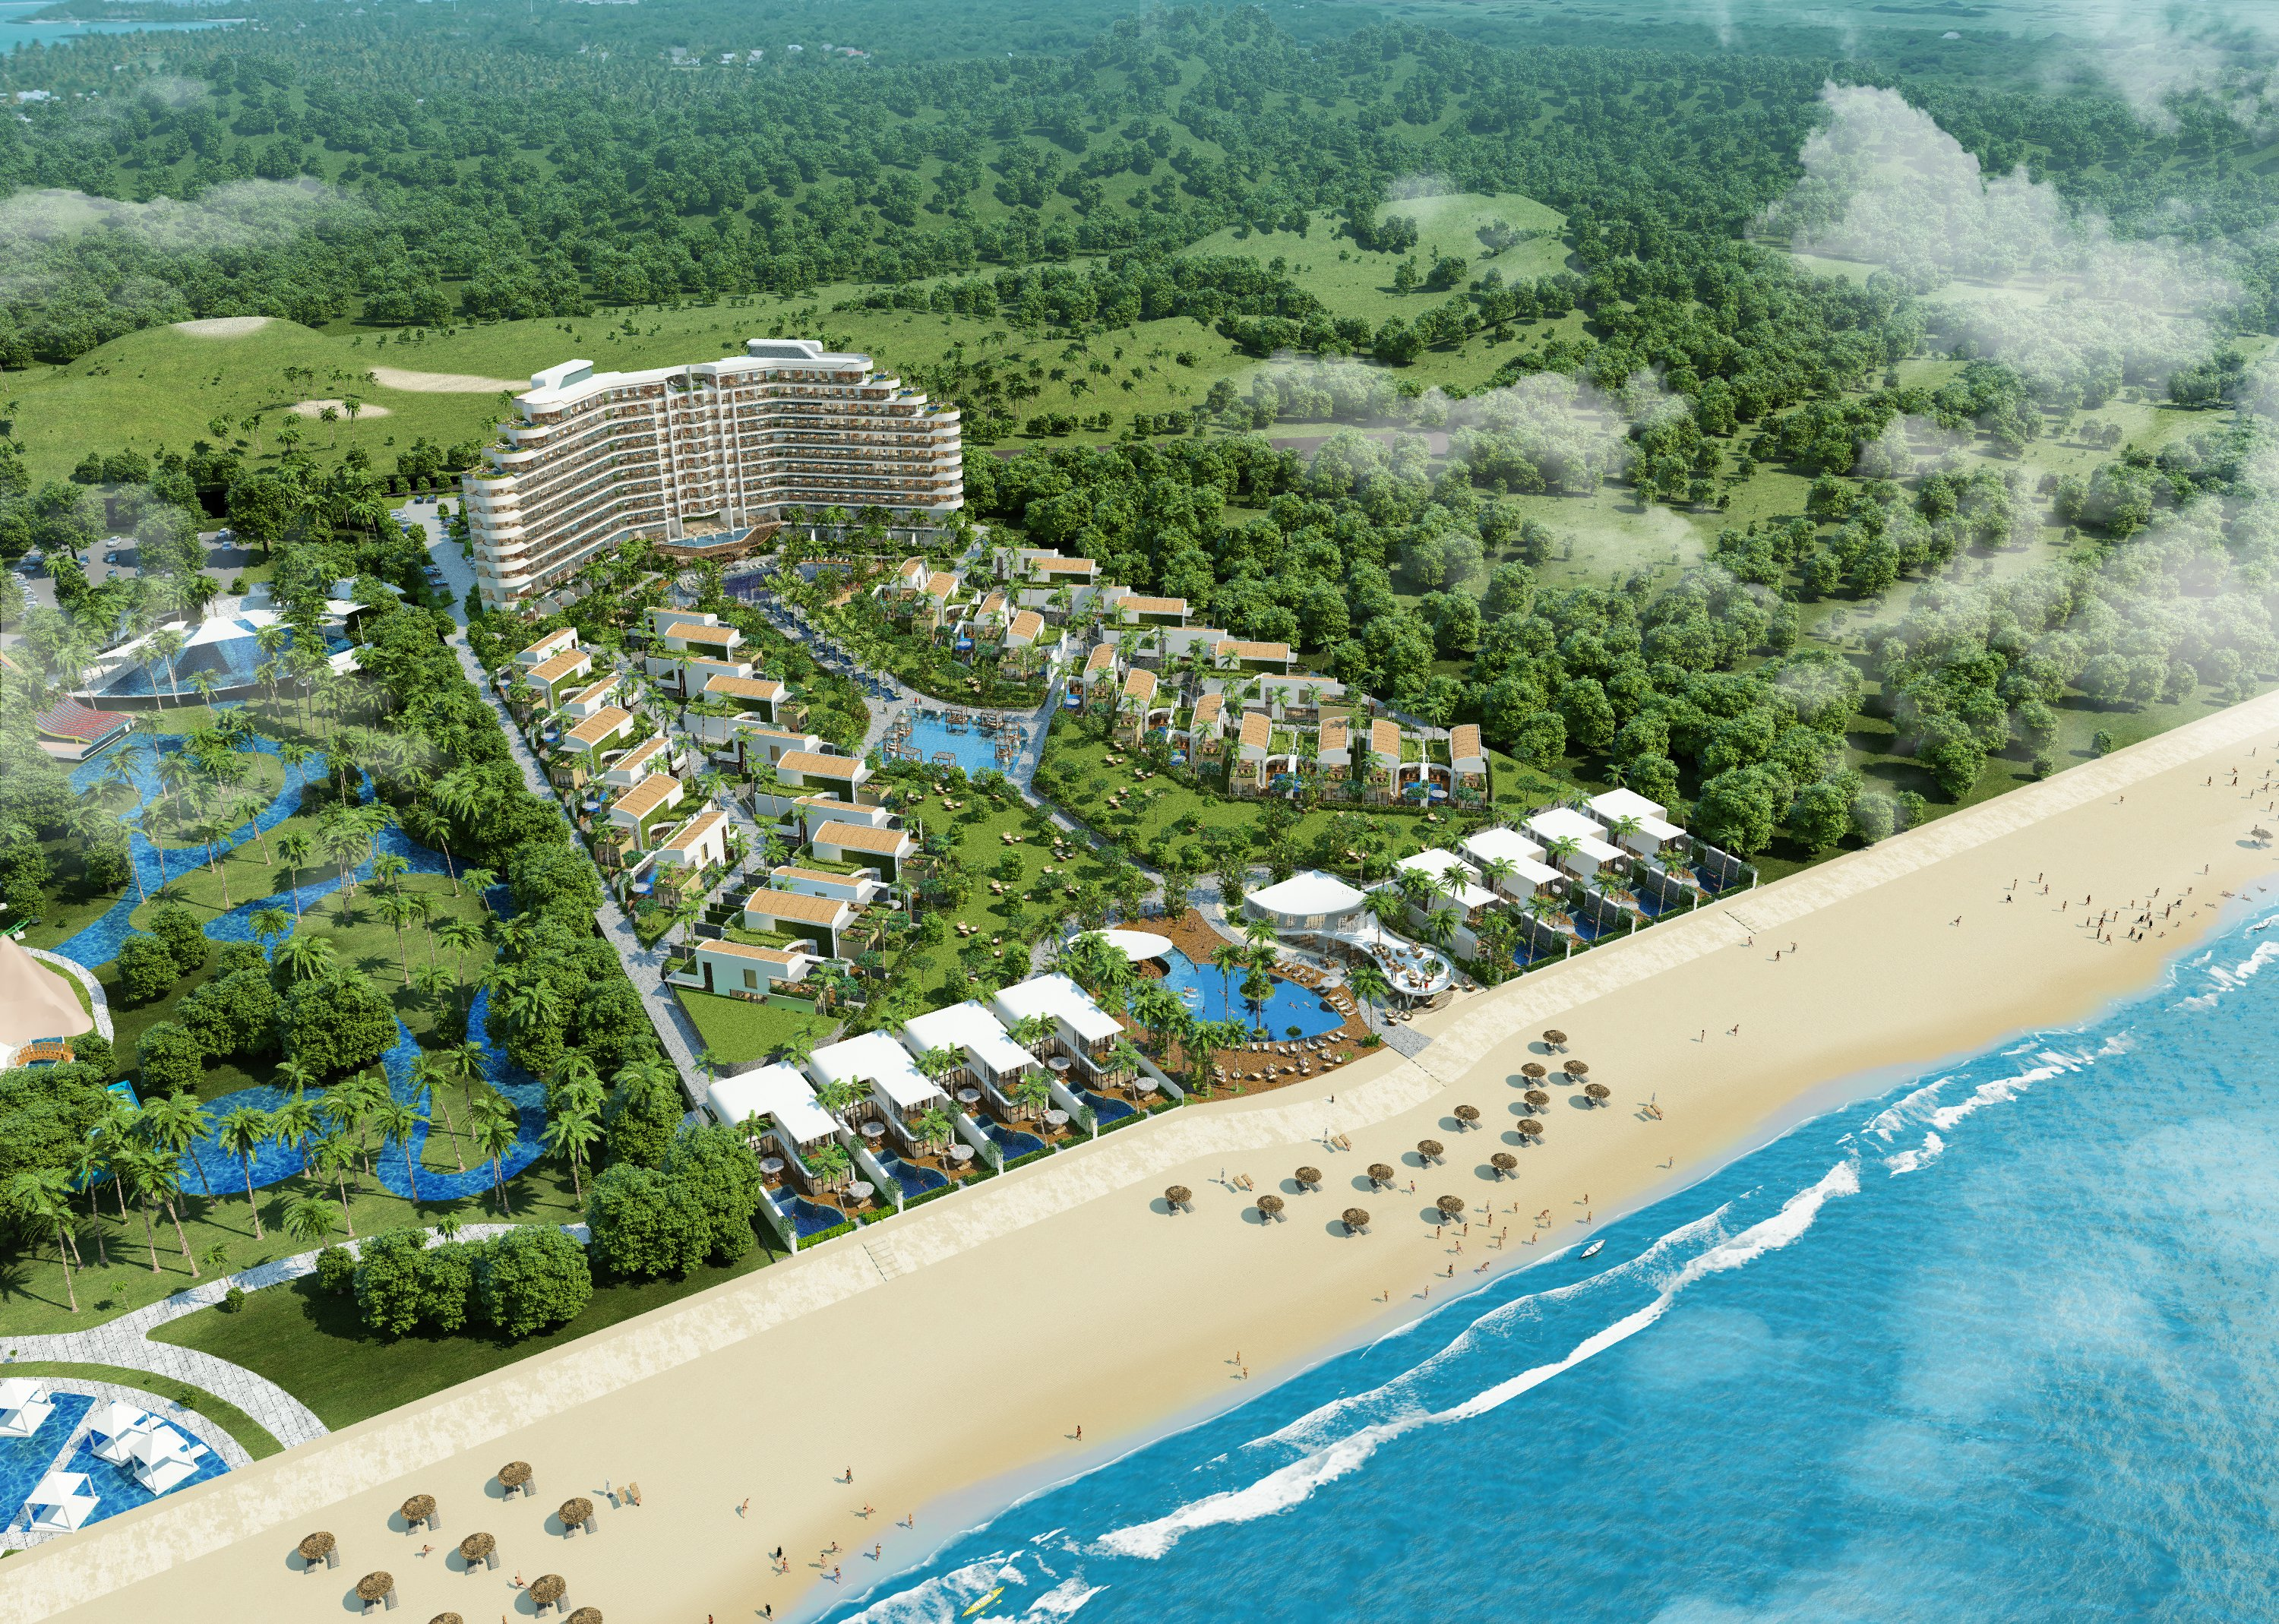 Wyndham Hotels & Resorts has signed its first hotel under the Ramada by Wyndham brand flag in Ho Tram, Vietnam.